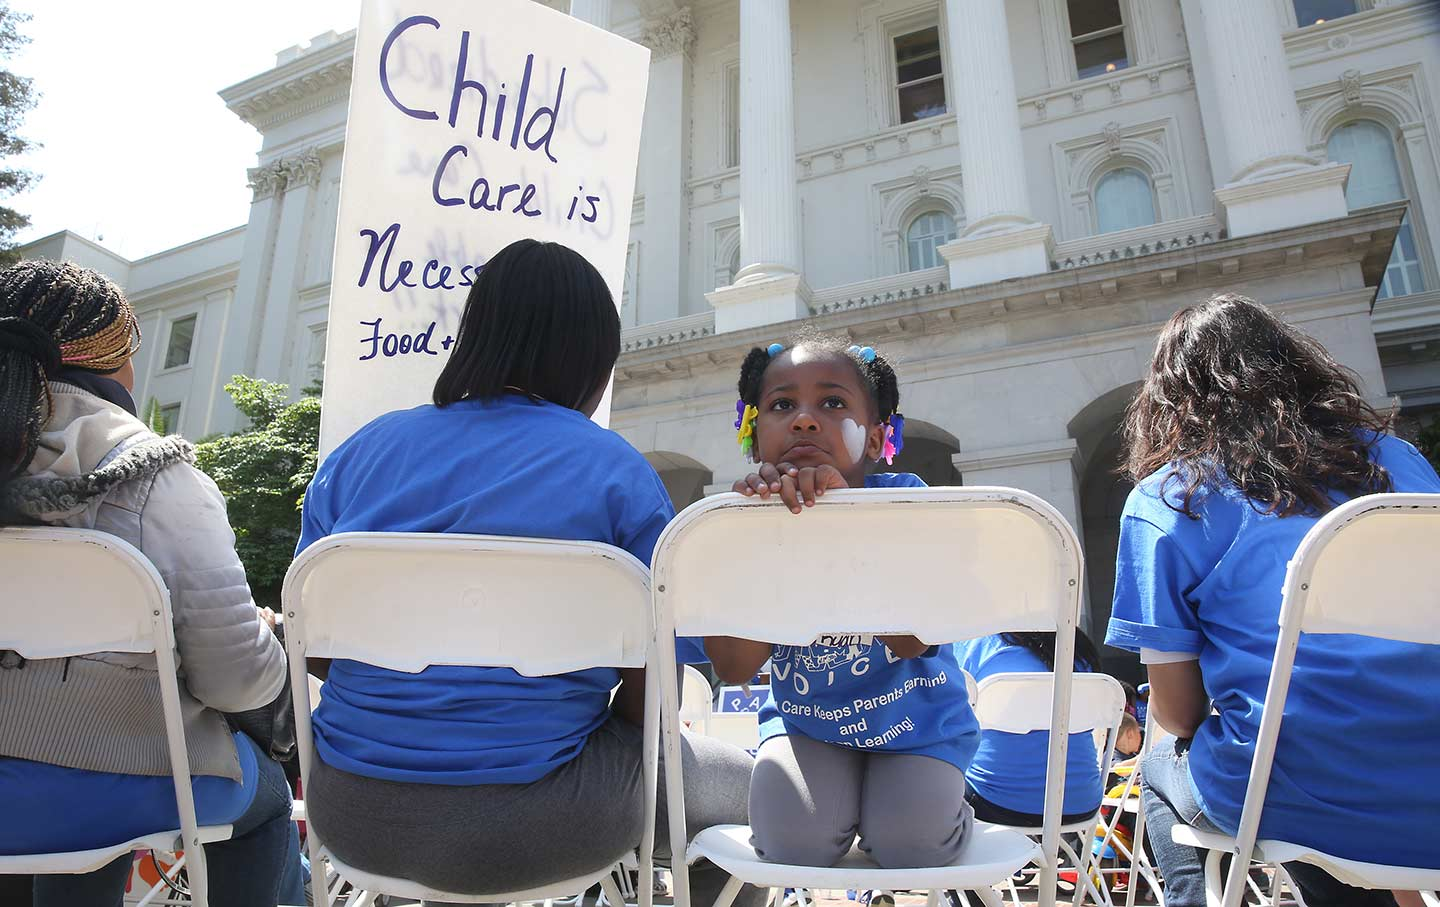 Little girl at child care rally CA